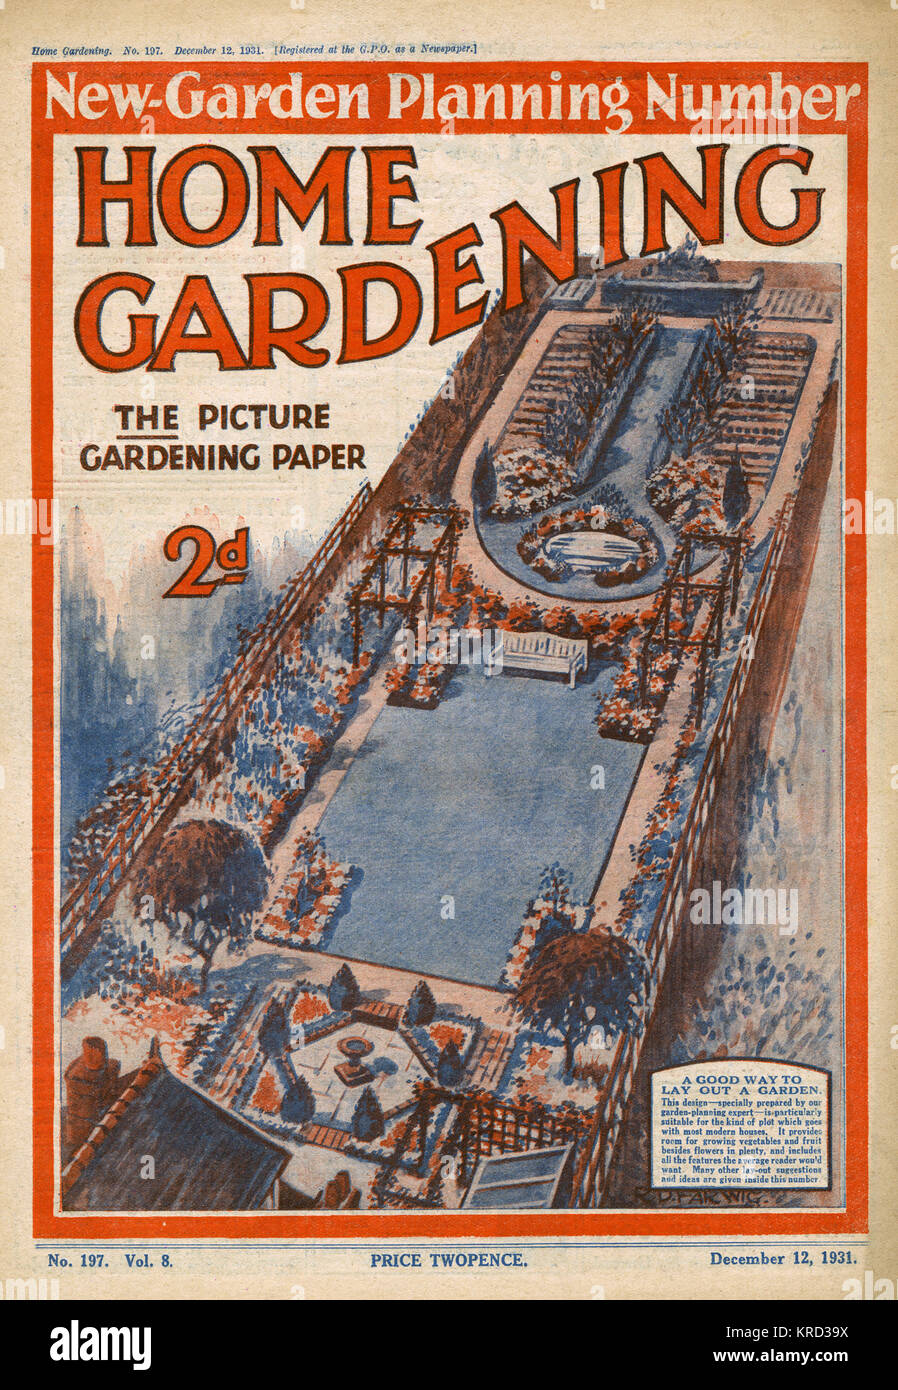 Front Cover Of Home Gardening Magazine Featuring An Overhead View Of A  Garden, With A